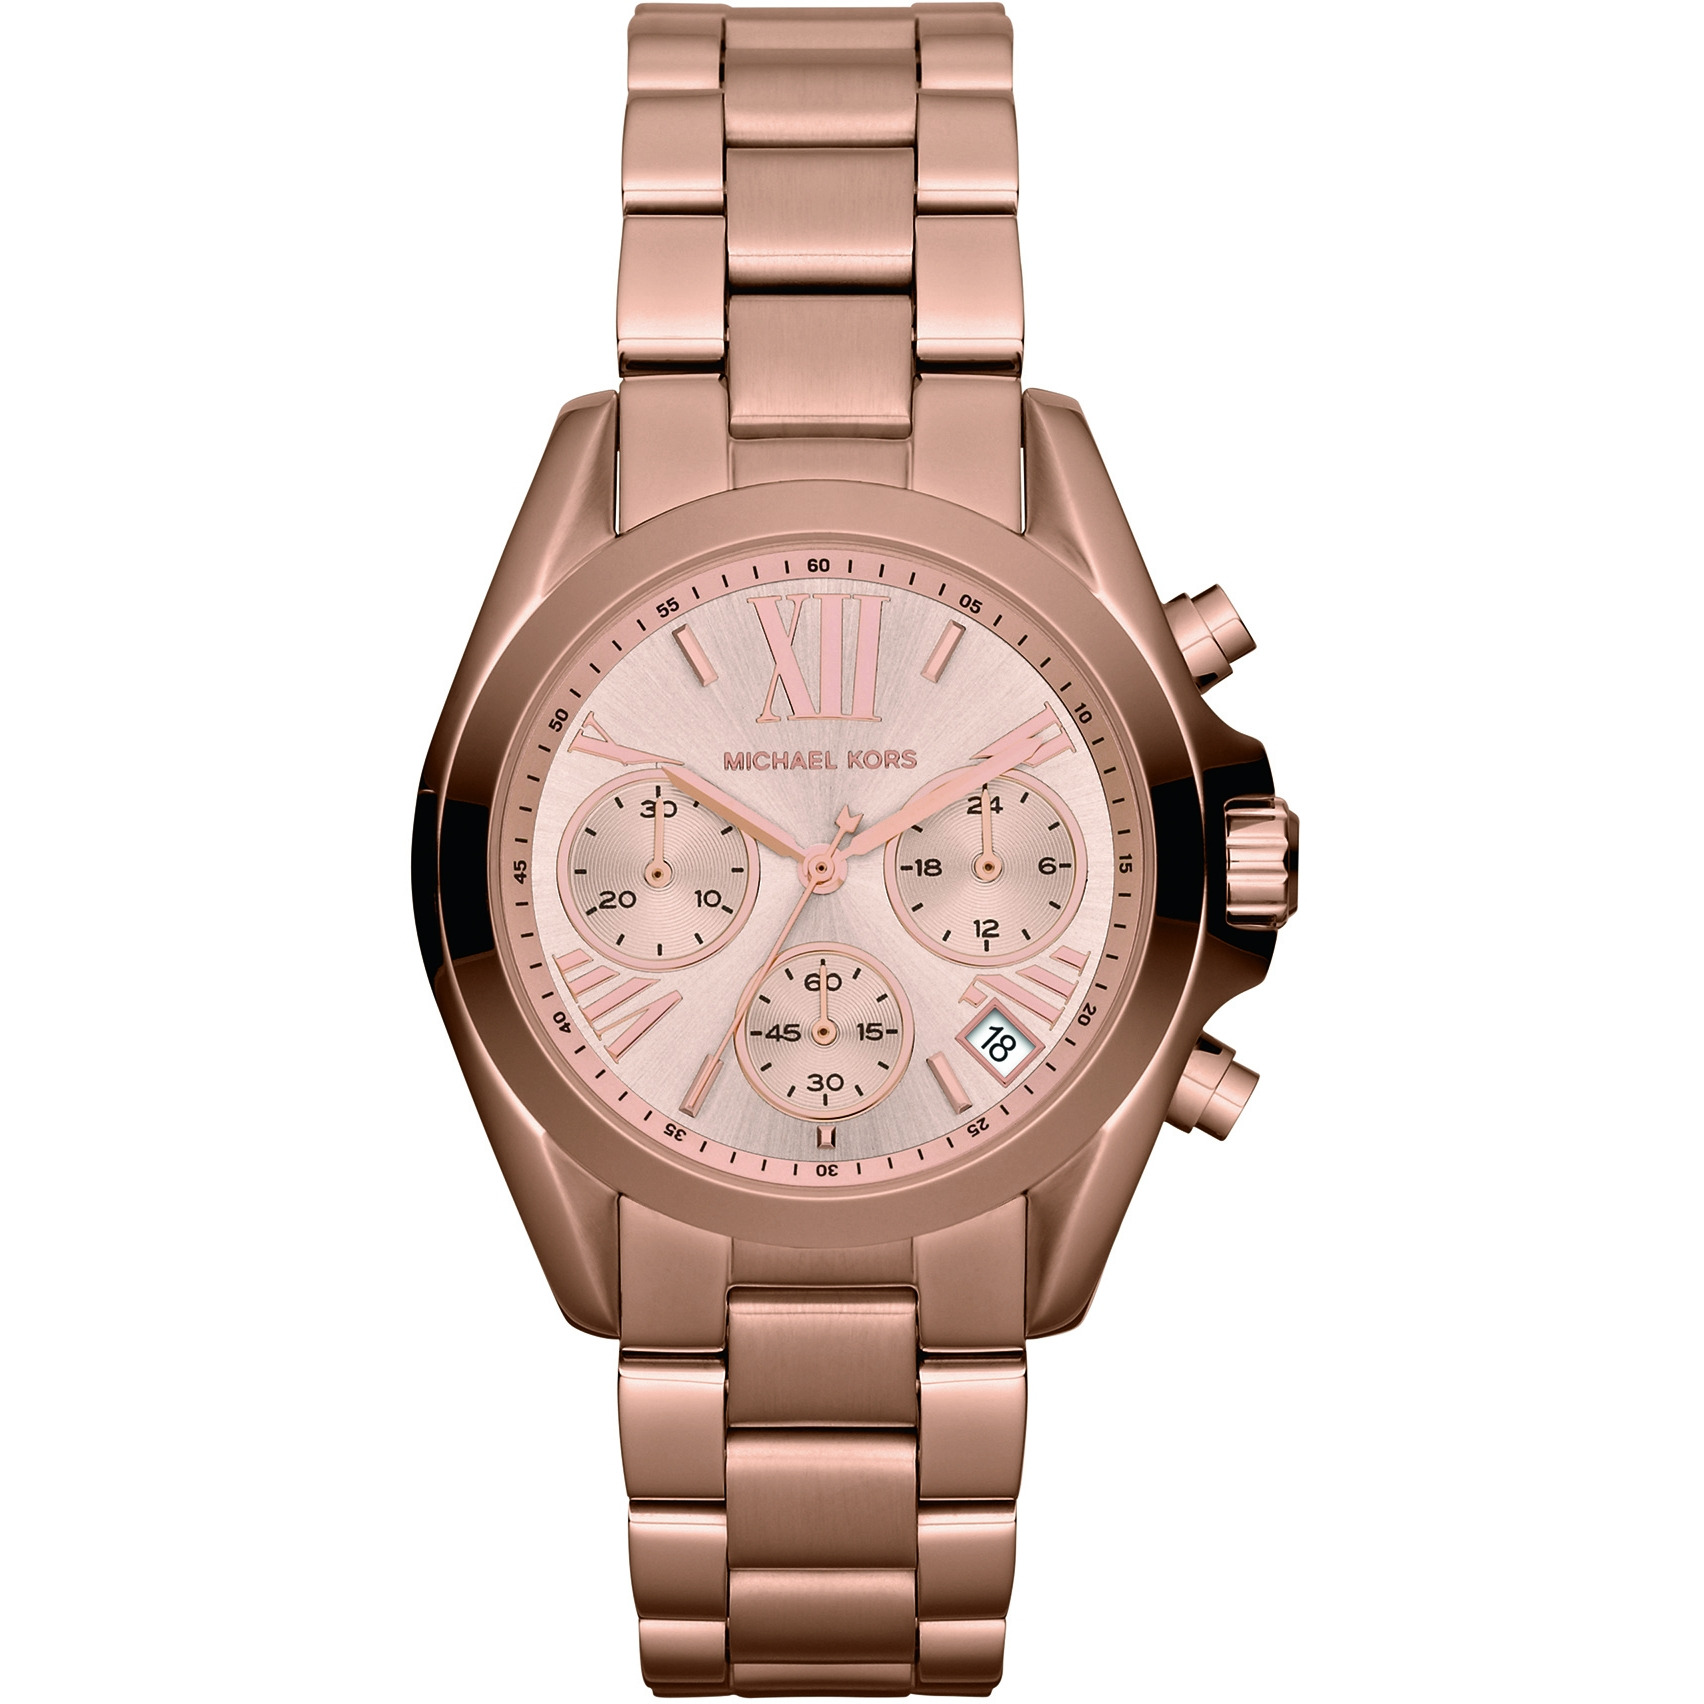 4994a3b6c484 Ladies Michael Kors Bradshaw Mini Chronograph Watch (MK5799 ...